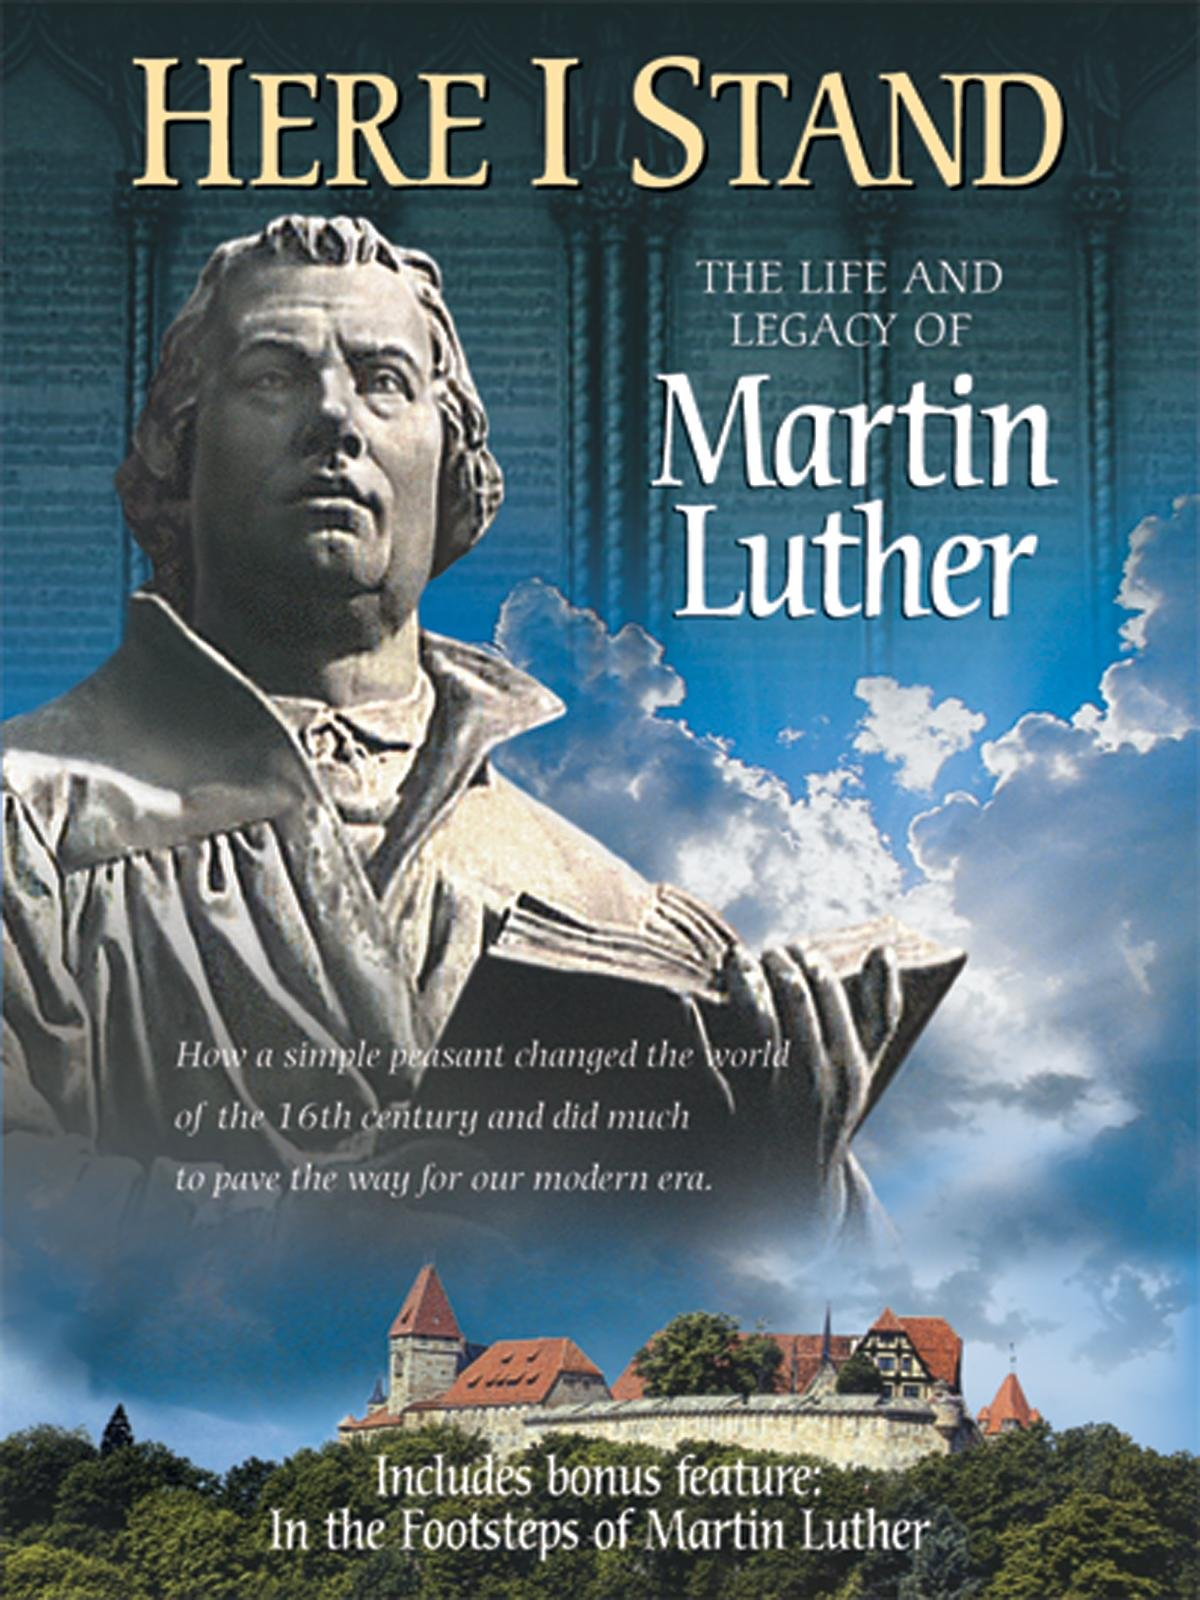 Here I Stand: The Life and Legacy of Martin Luther